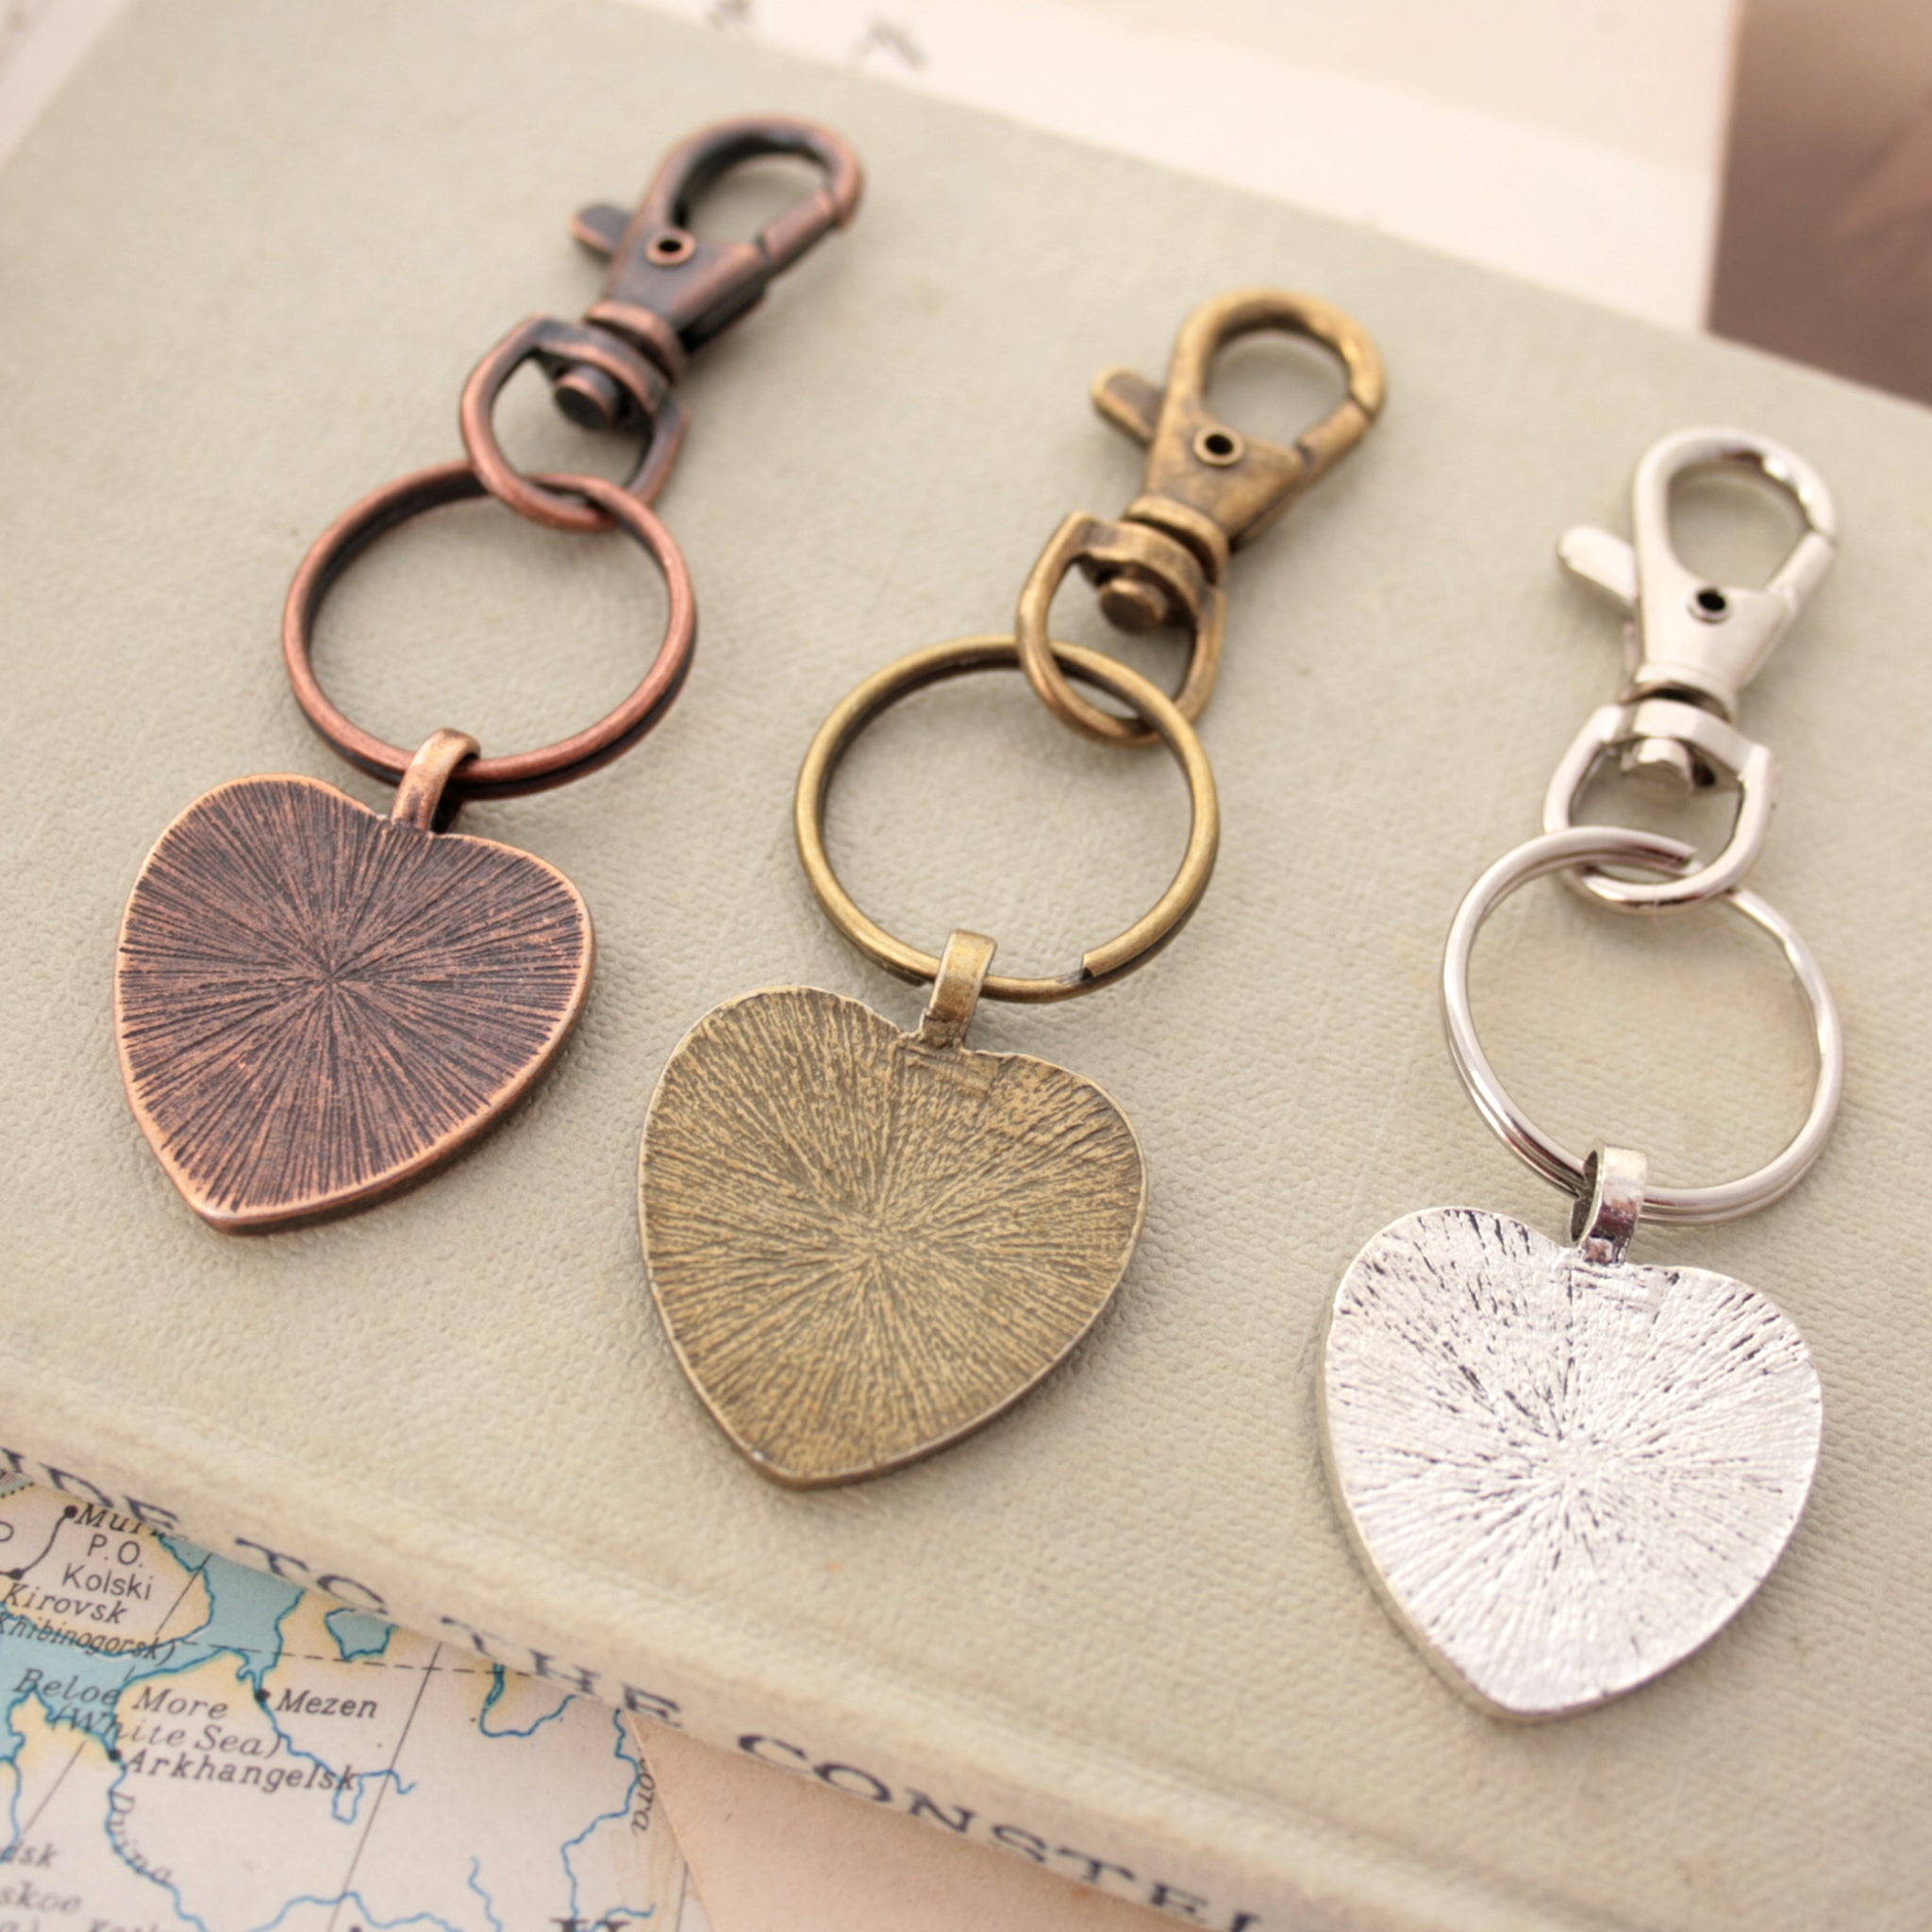 Copper, bronze and silver tone keychains in heart shape